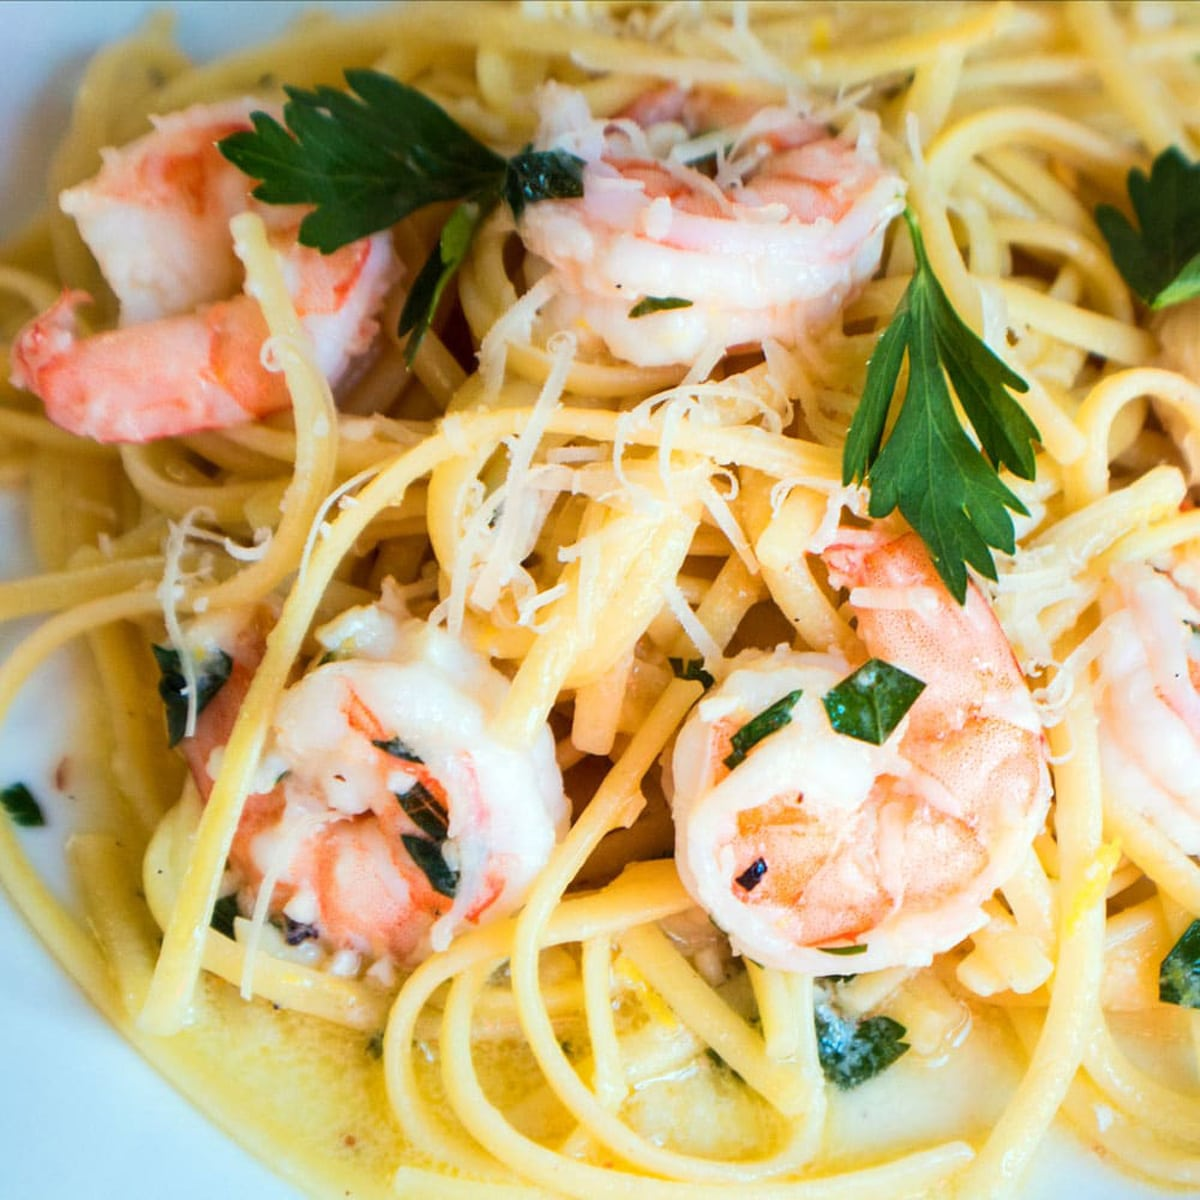 Shrimp scamp over a bed of noodles, with parsley.